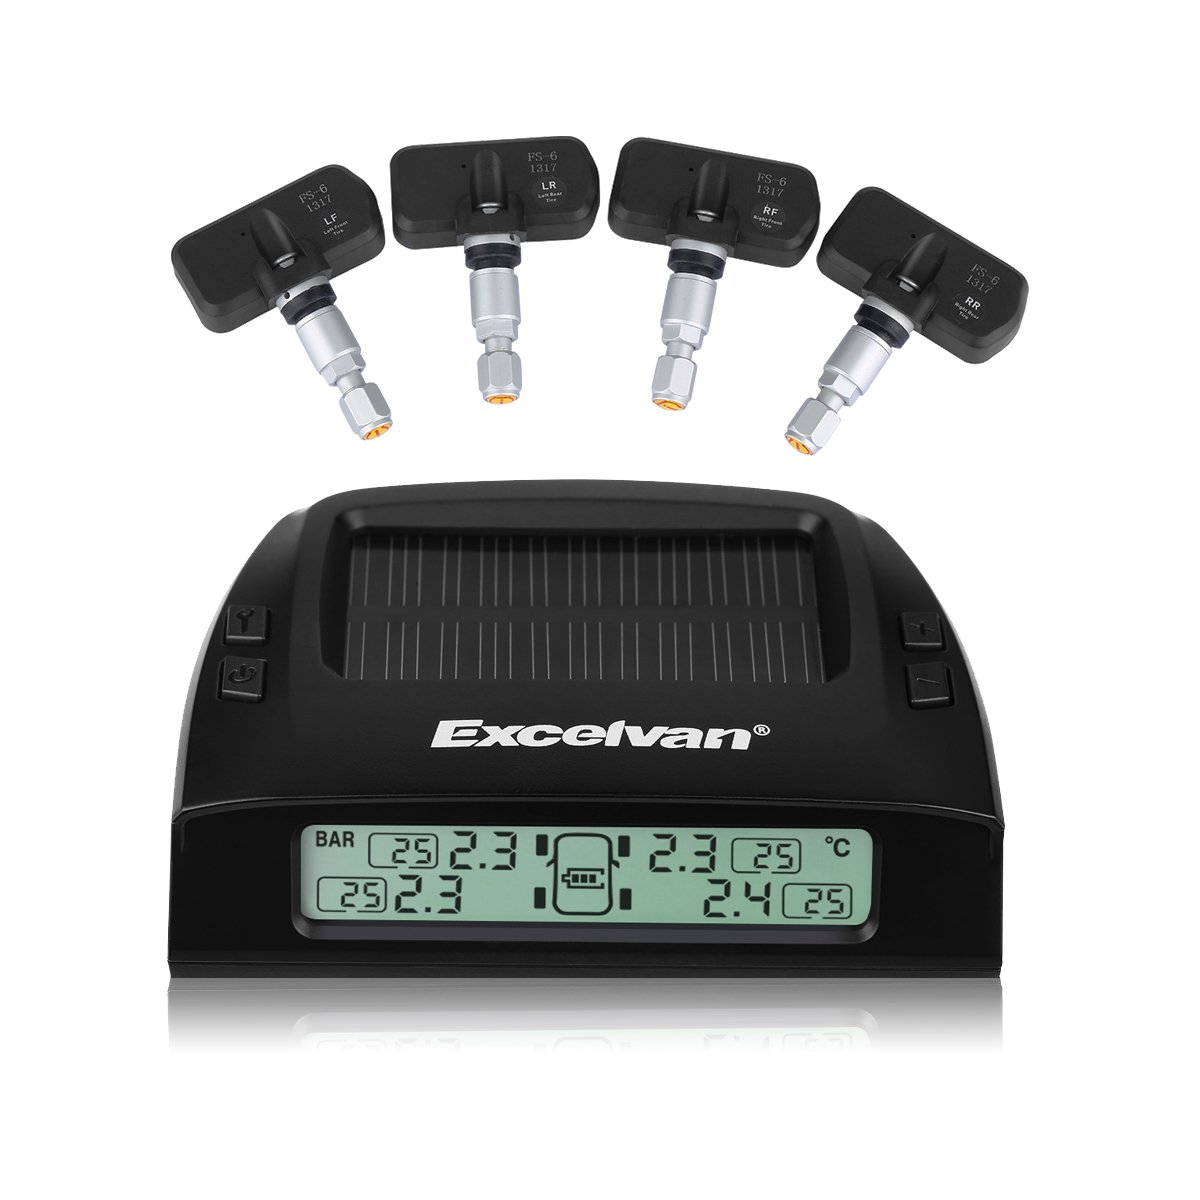 Excelvan Wireless Solar Rechargeble Digital LED Tire Pressure Monitoring System TPMS with 4 External Sensors Pressure Range 0~8 Bar (0~116Psi)